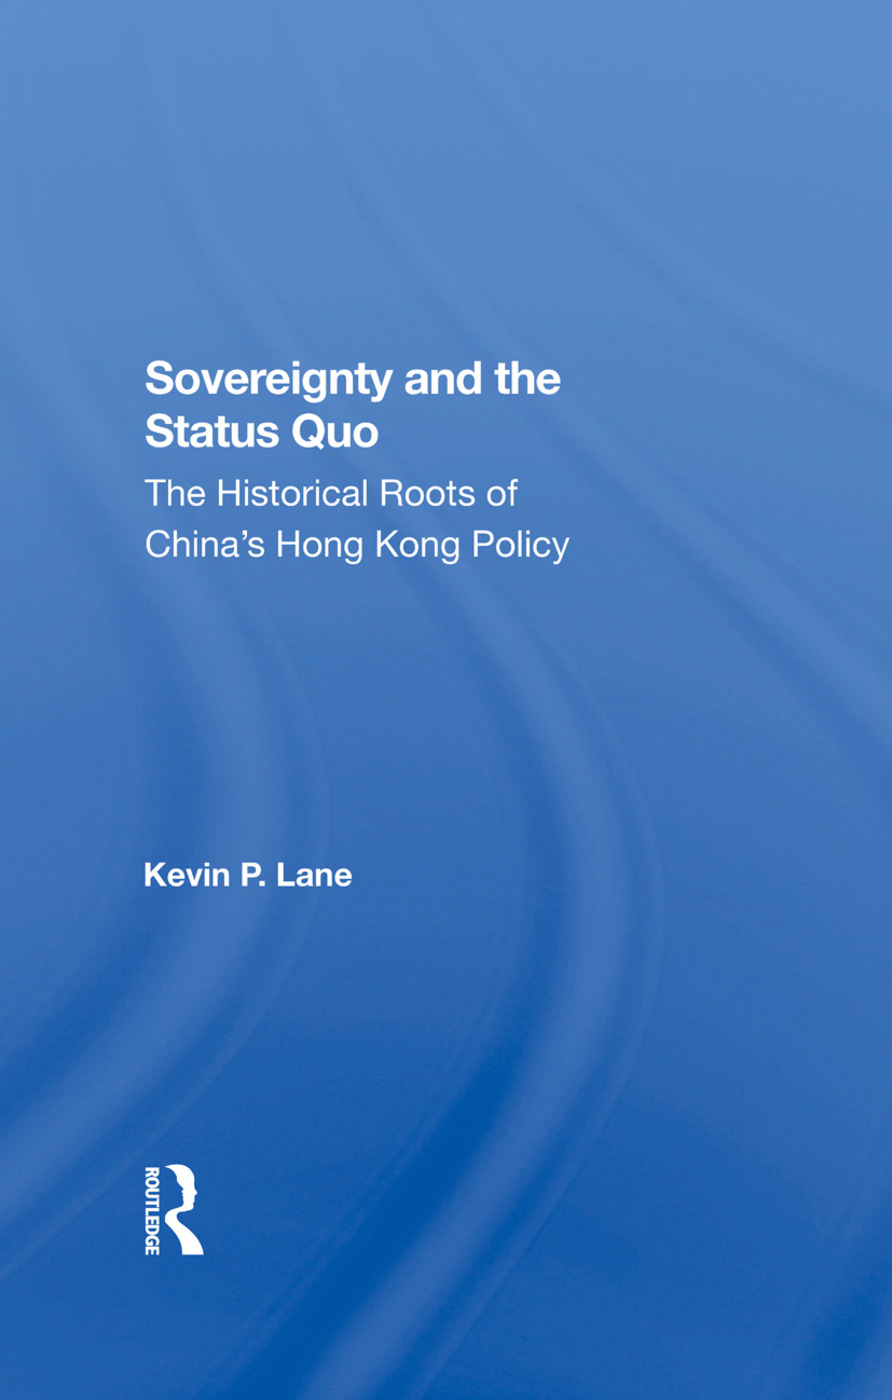 Sovereignty And The Status Quo: The Historical Roots Of China's Hong Kong Policy book cover